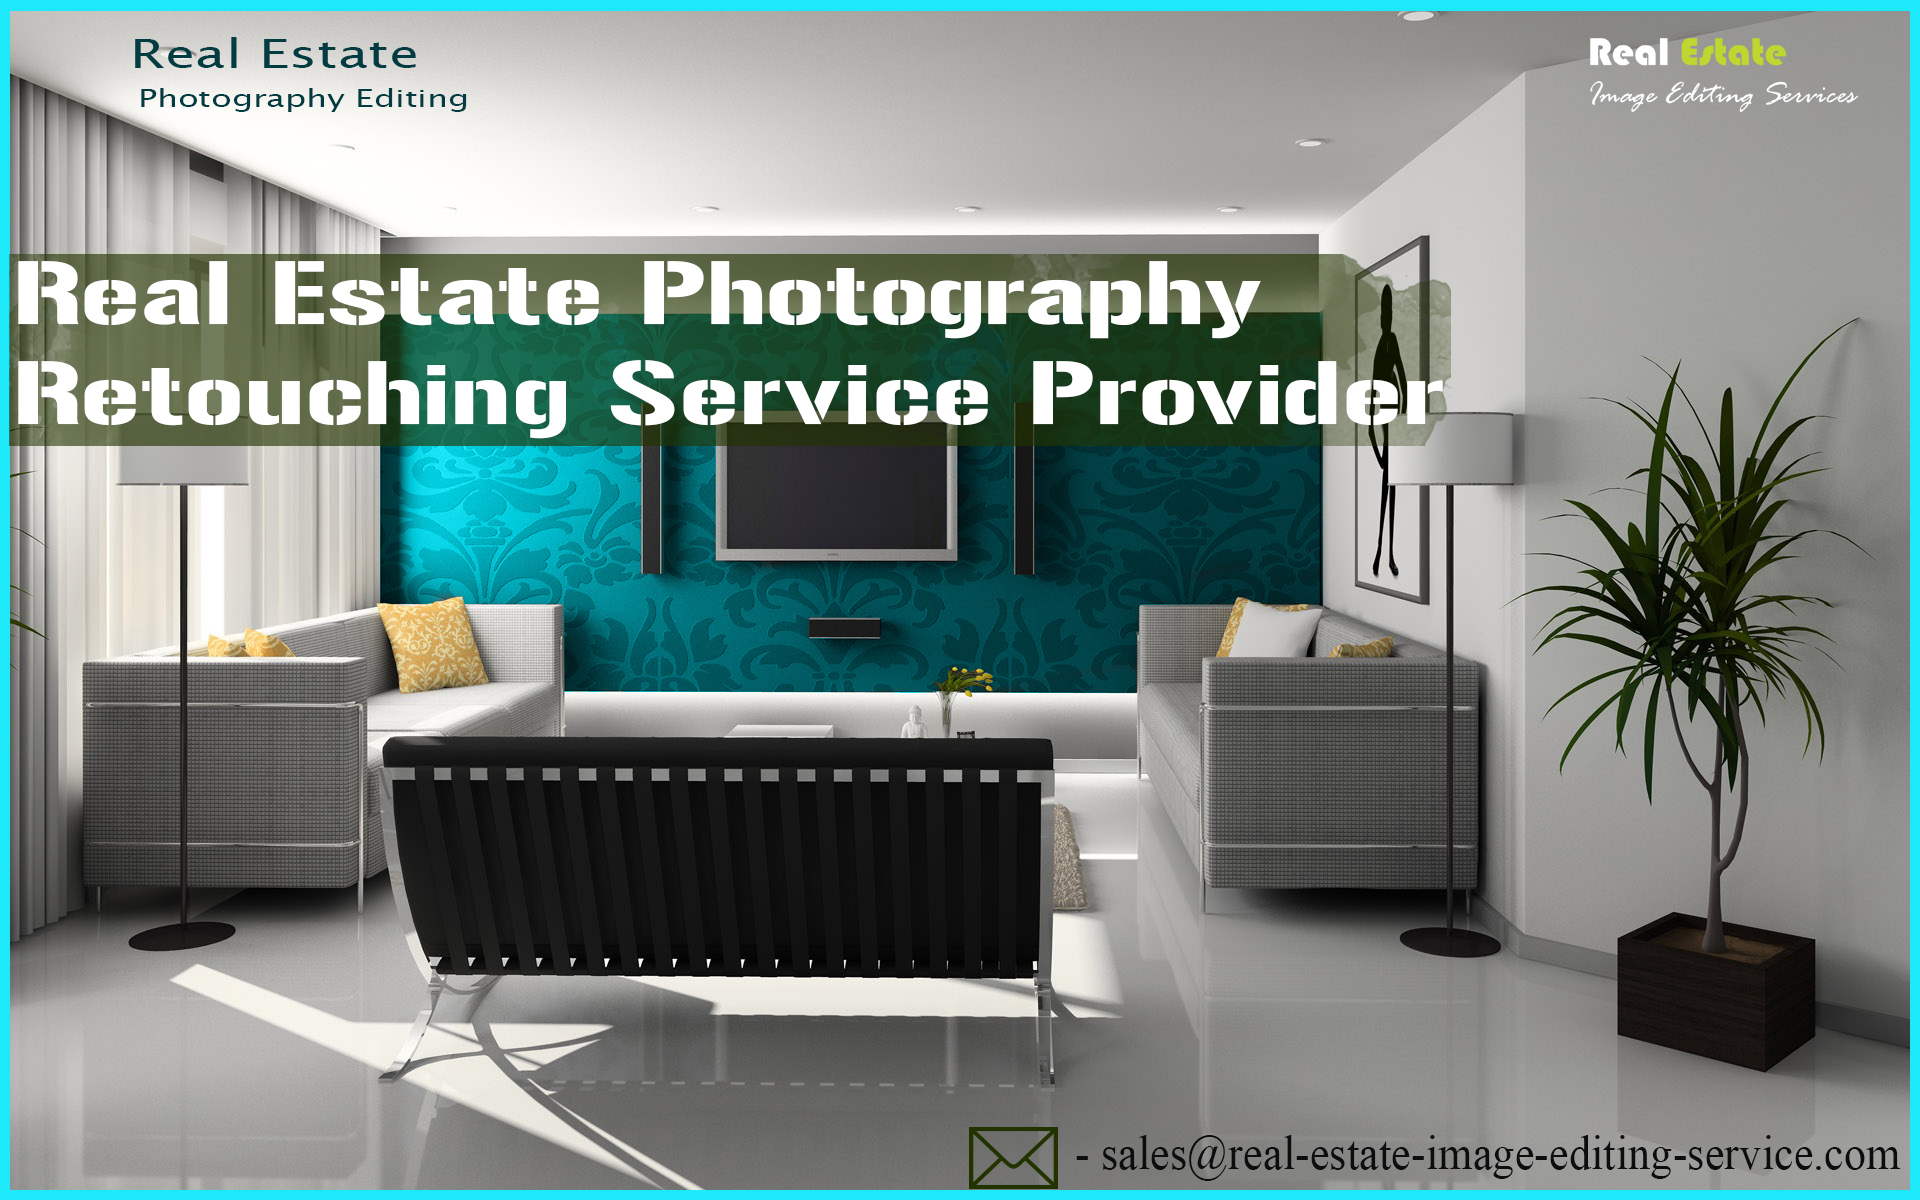 Fix Real Estate Photography Retouching